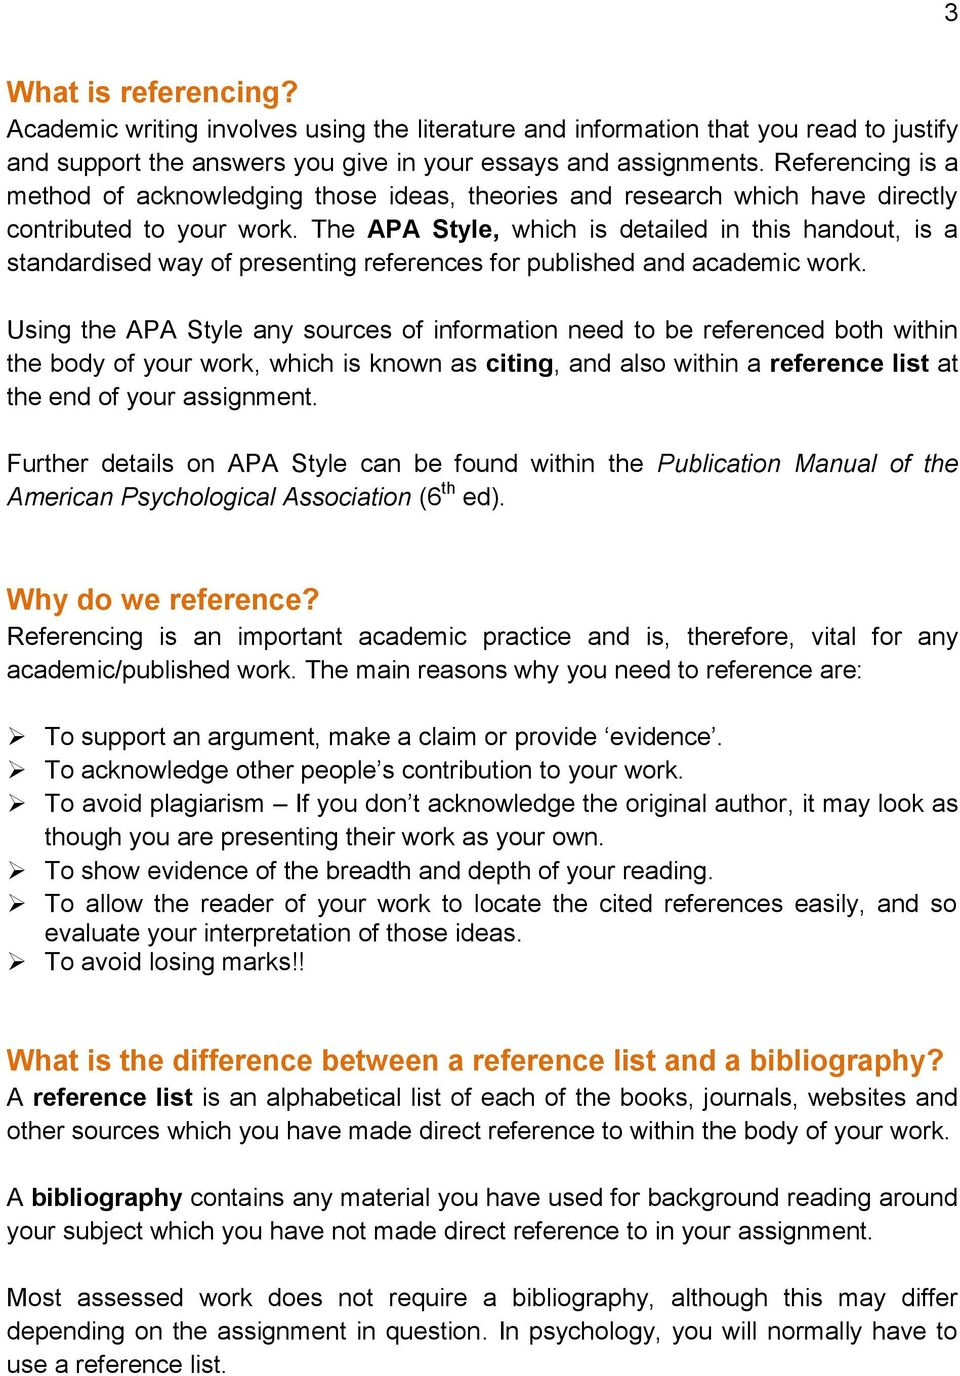 The APA Style, which is detailed in this handout, is a standardised way of presenting references for published and academic work.